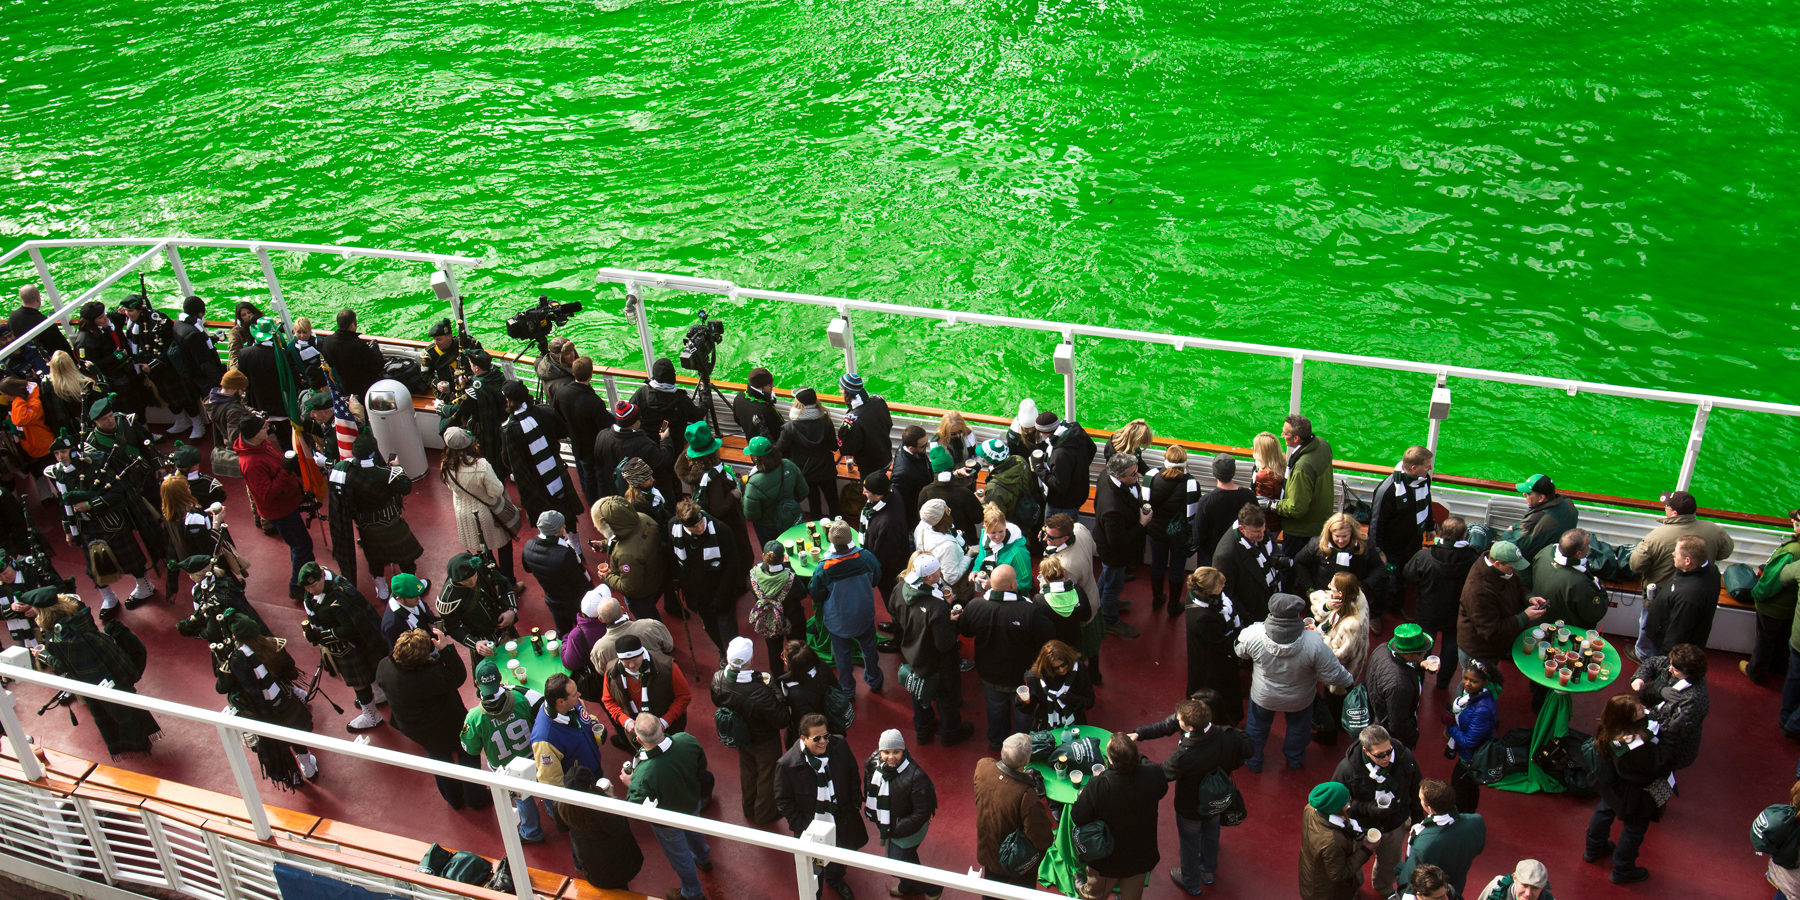 St Patricks Day green river